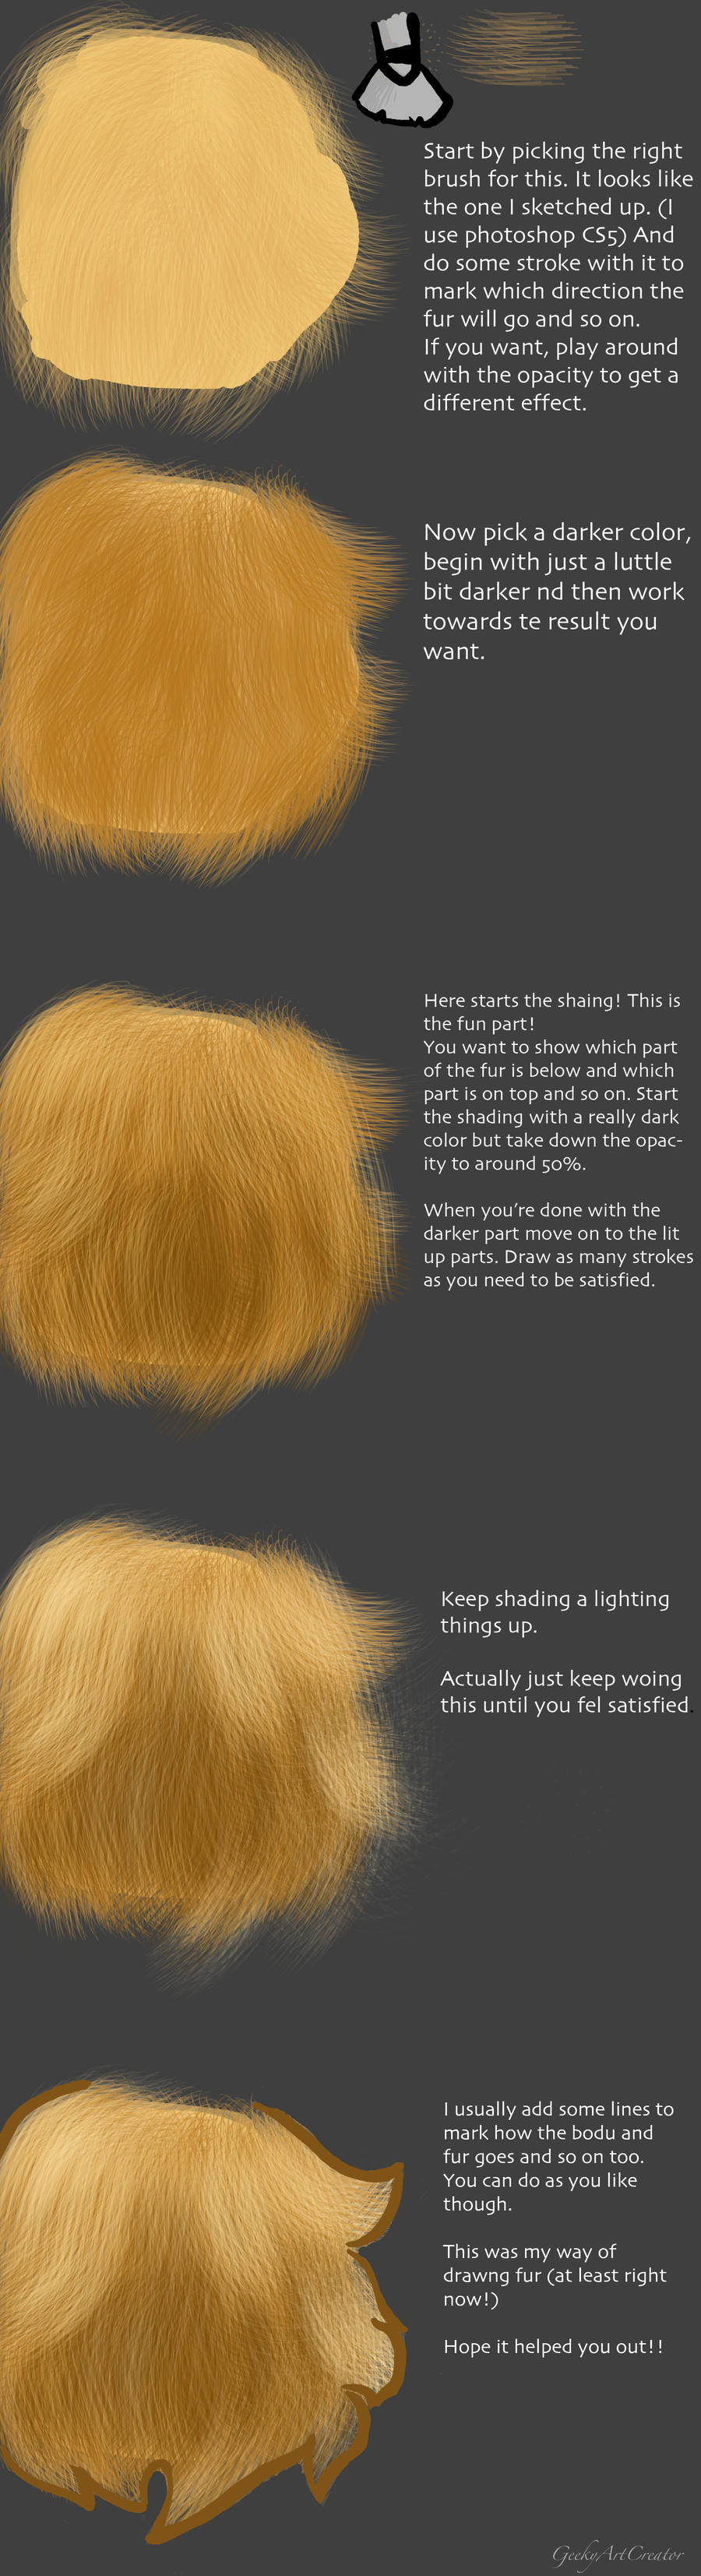 How To Draw Fur In Pscs5 By Haxzure